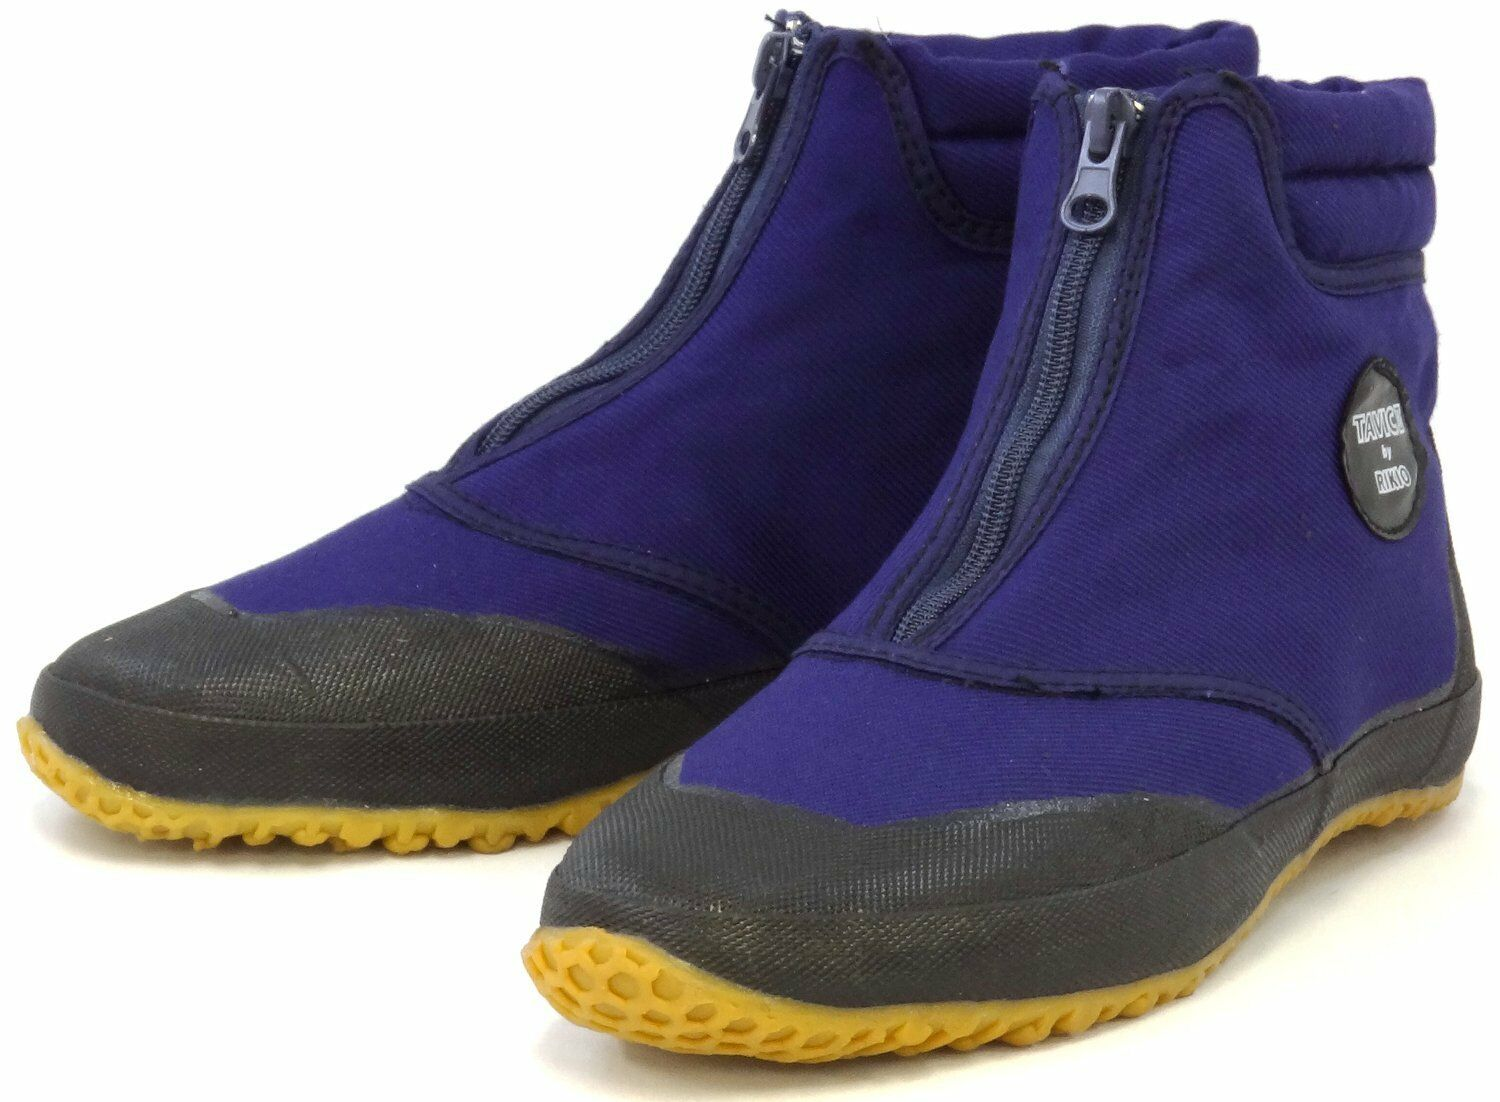 Japanese Rikio Tavic 2 TABI Boots Ninja Shoes Mid Cut Blue TVCII ZB Zip Japan